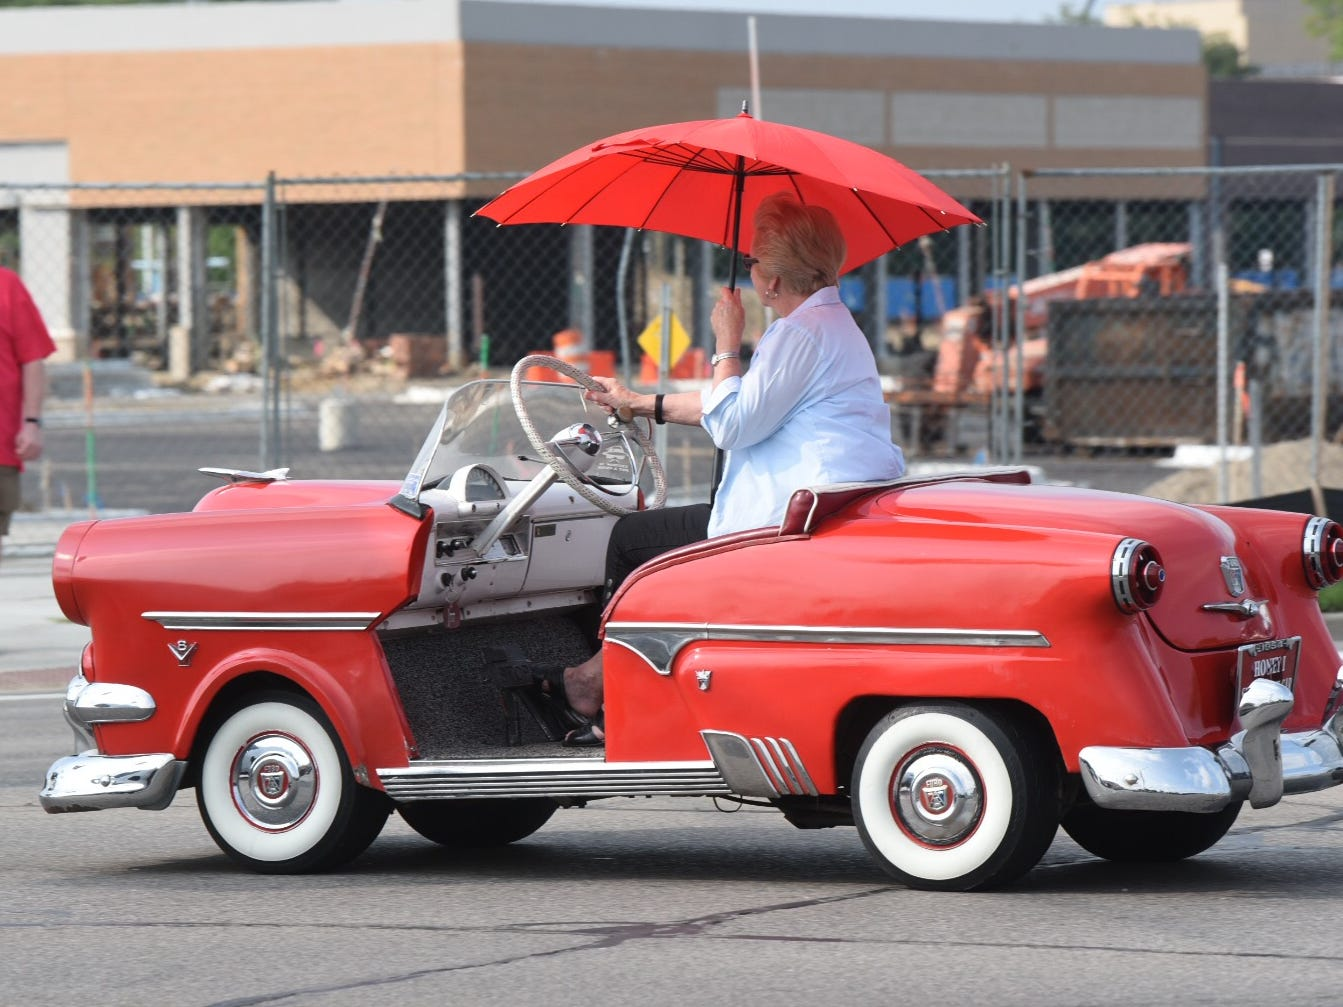 An umbrella shades this driver in her  mini convertible during the Woodward Dream Cruise in Royal Oak.